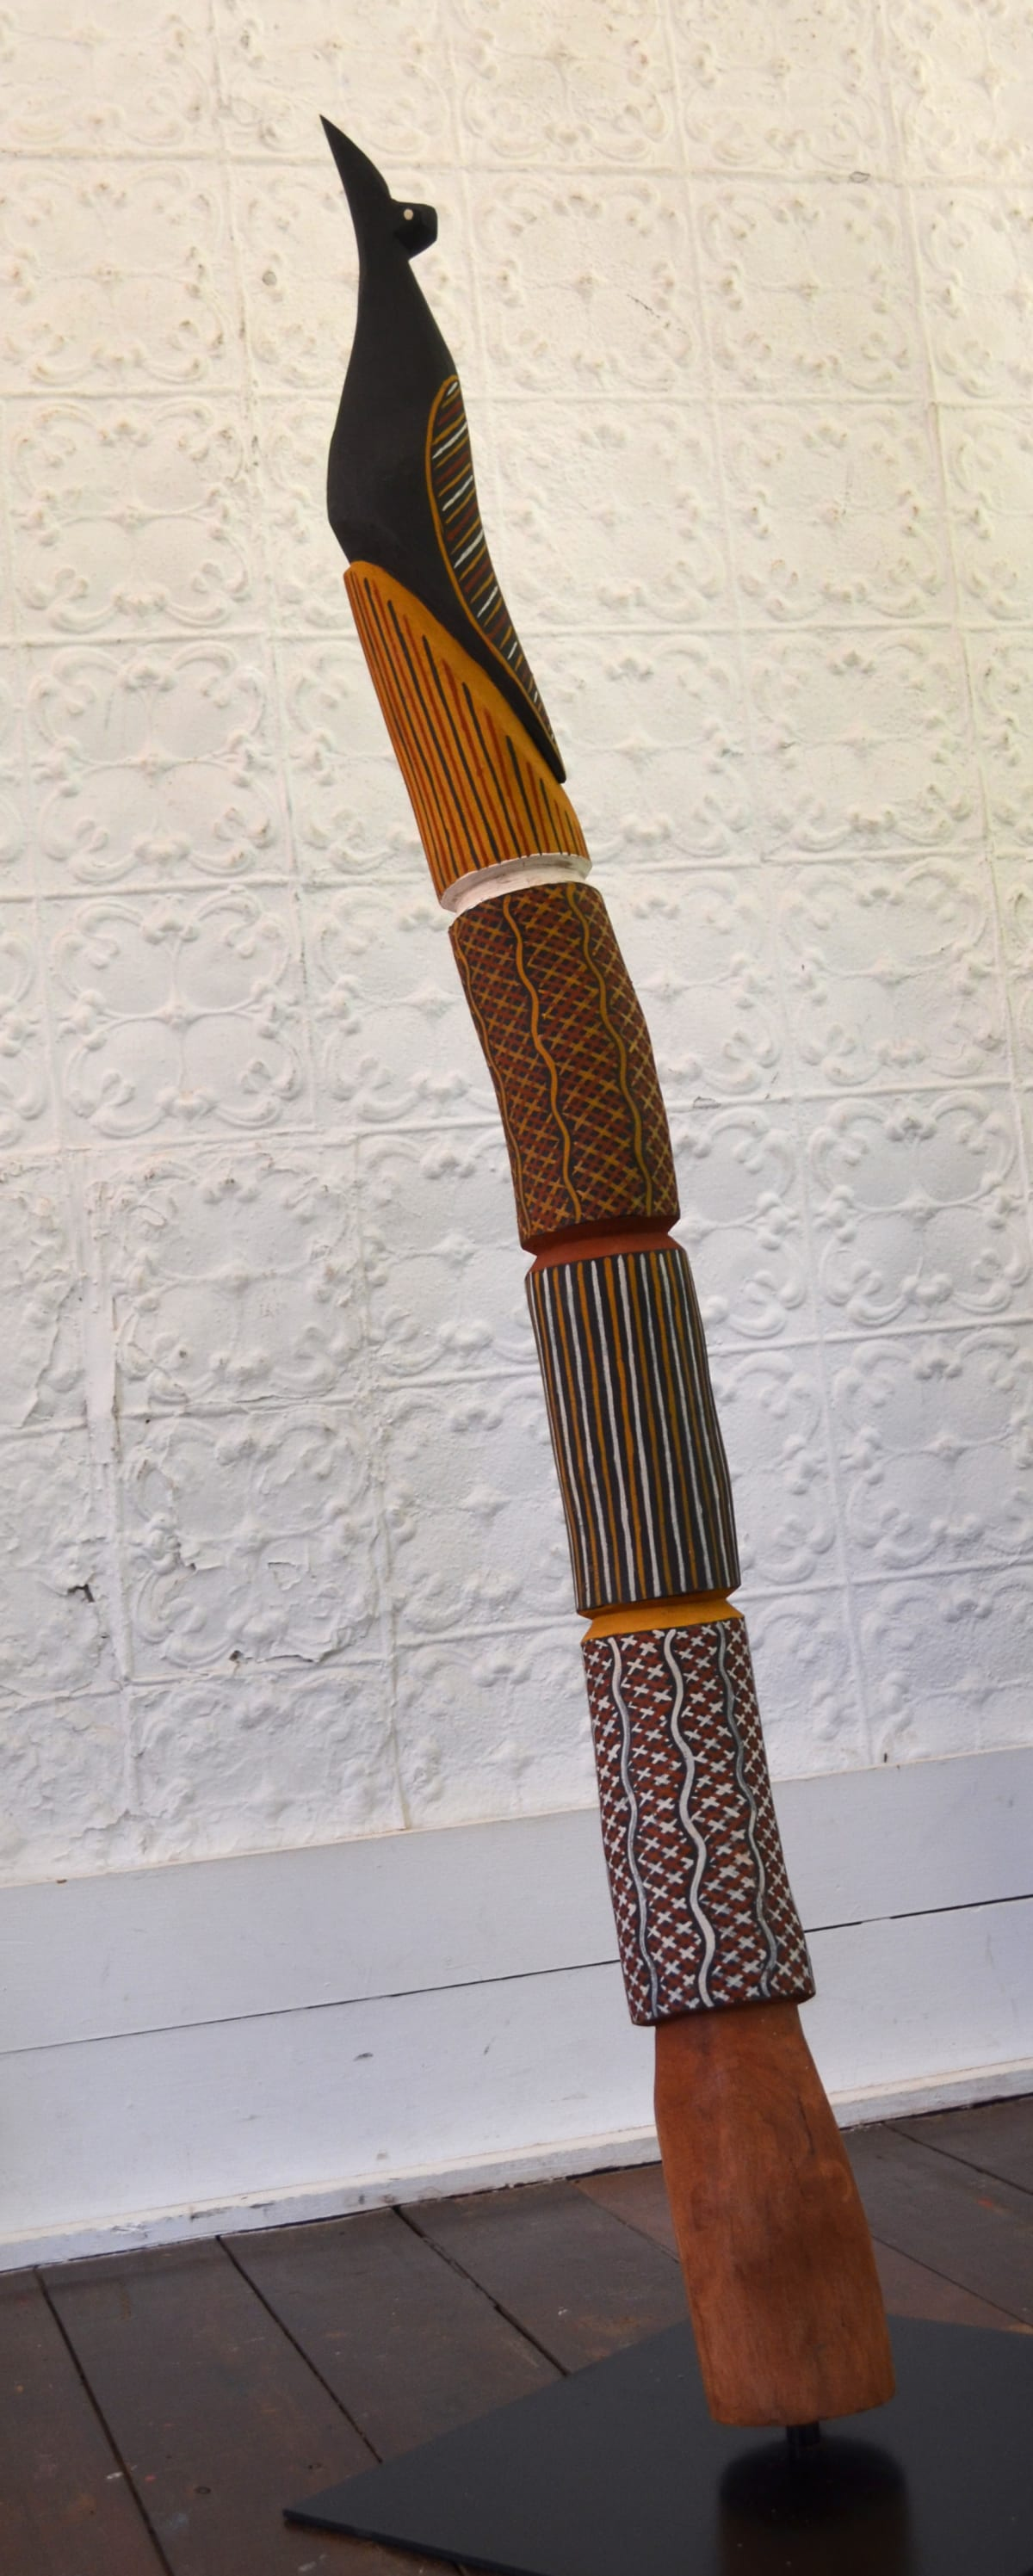 Nicholas Mario Bird Pole -Carving carving with natural earth pigment 144 x 10 x 10 cm